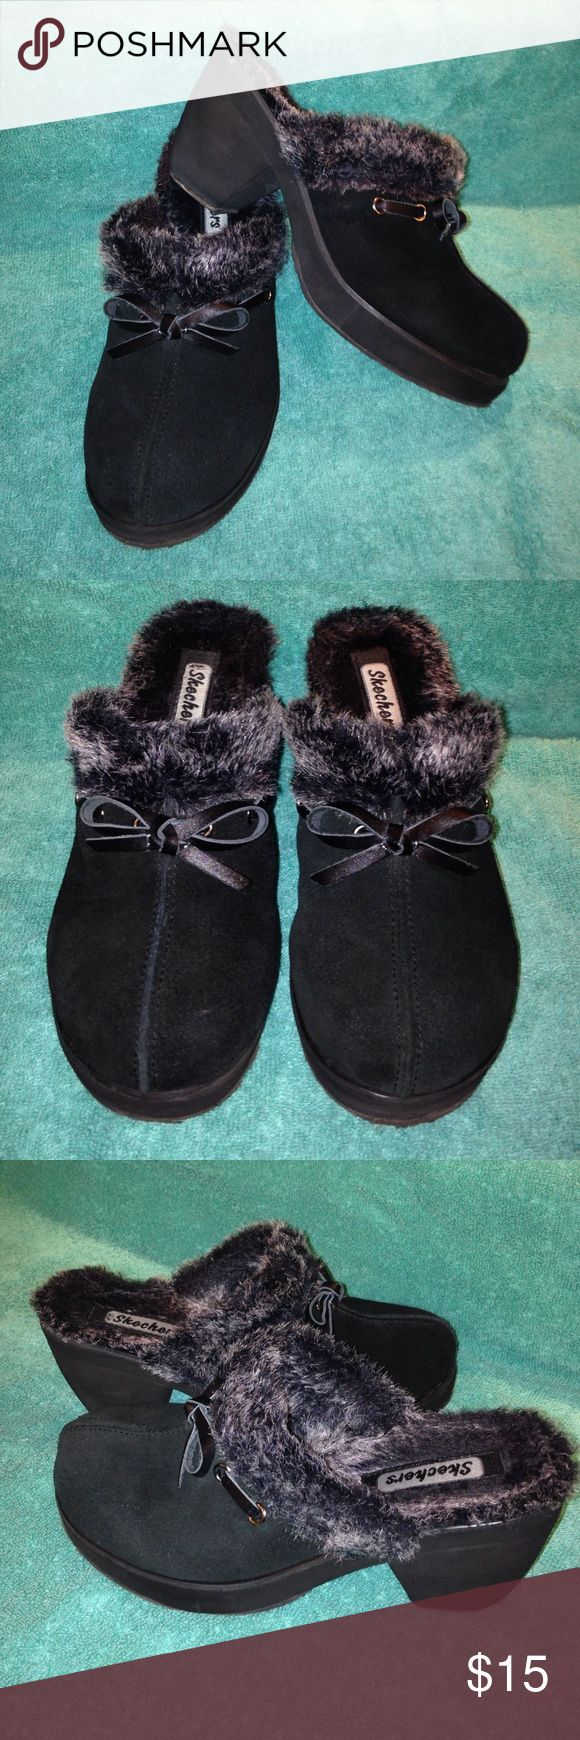 """Skechers Clogs Black Skechers Clogs. Size 7 with a 3"""" heel. Lined with black / silver faux fur. Excellent used condition. Skechers Shoes Mules & Clogs"""